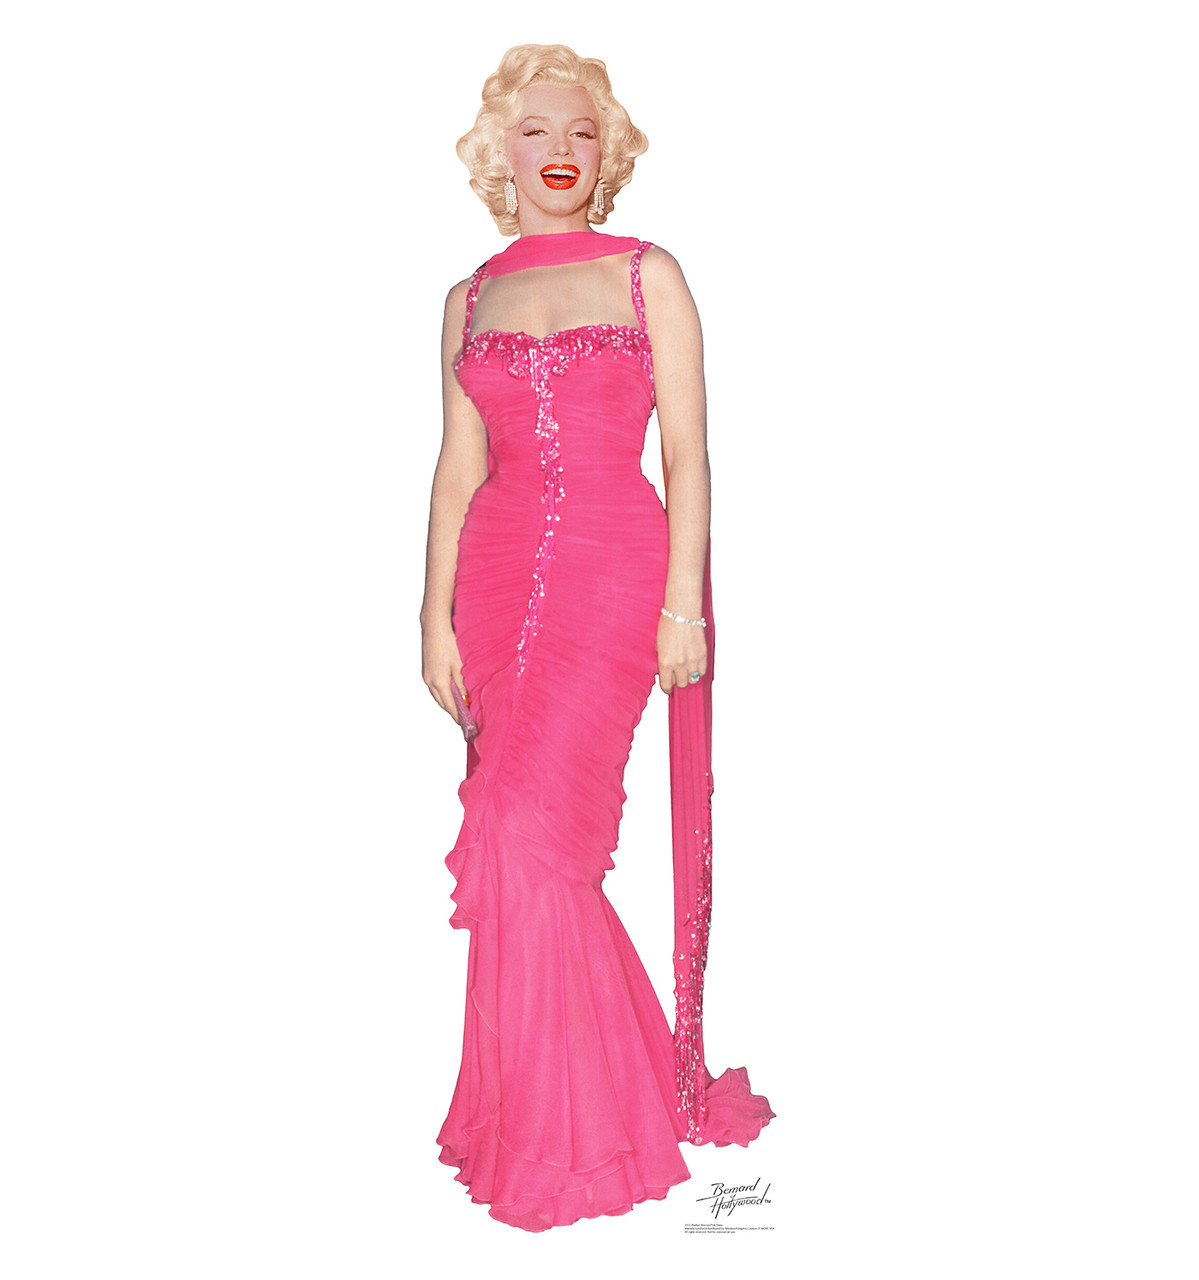 Marilyn Monroe Pink Dress Cardboard Cutout 1012